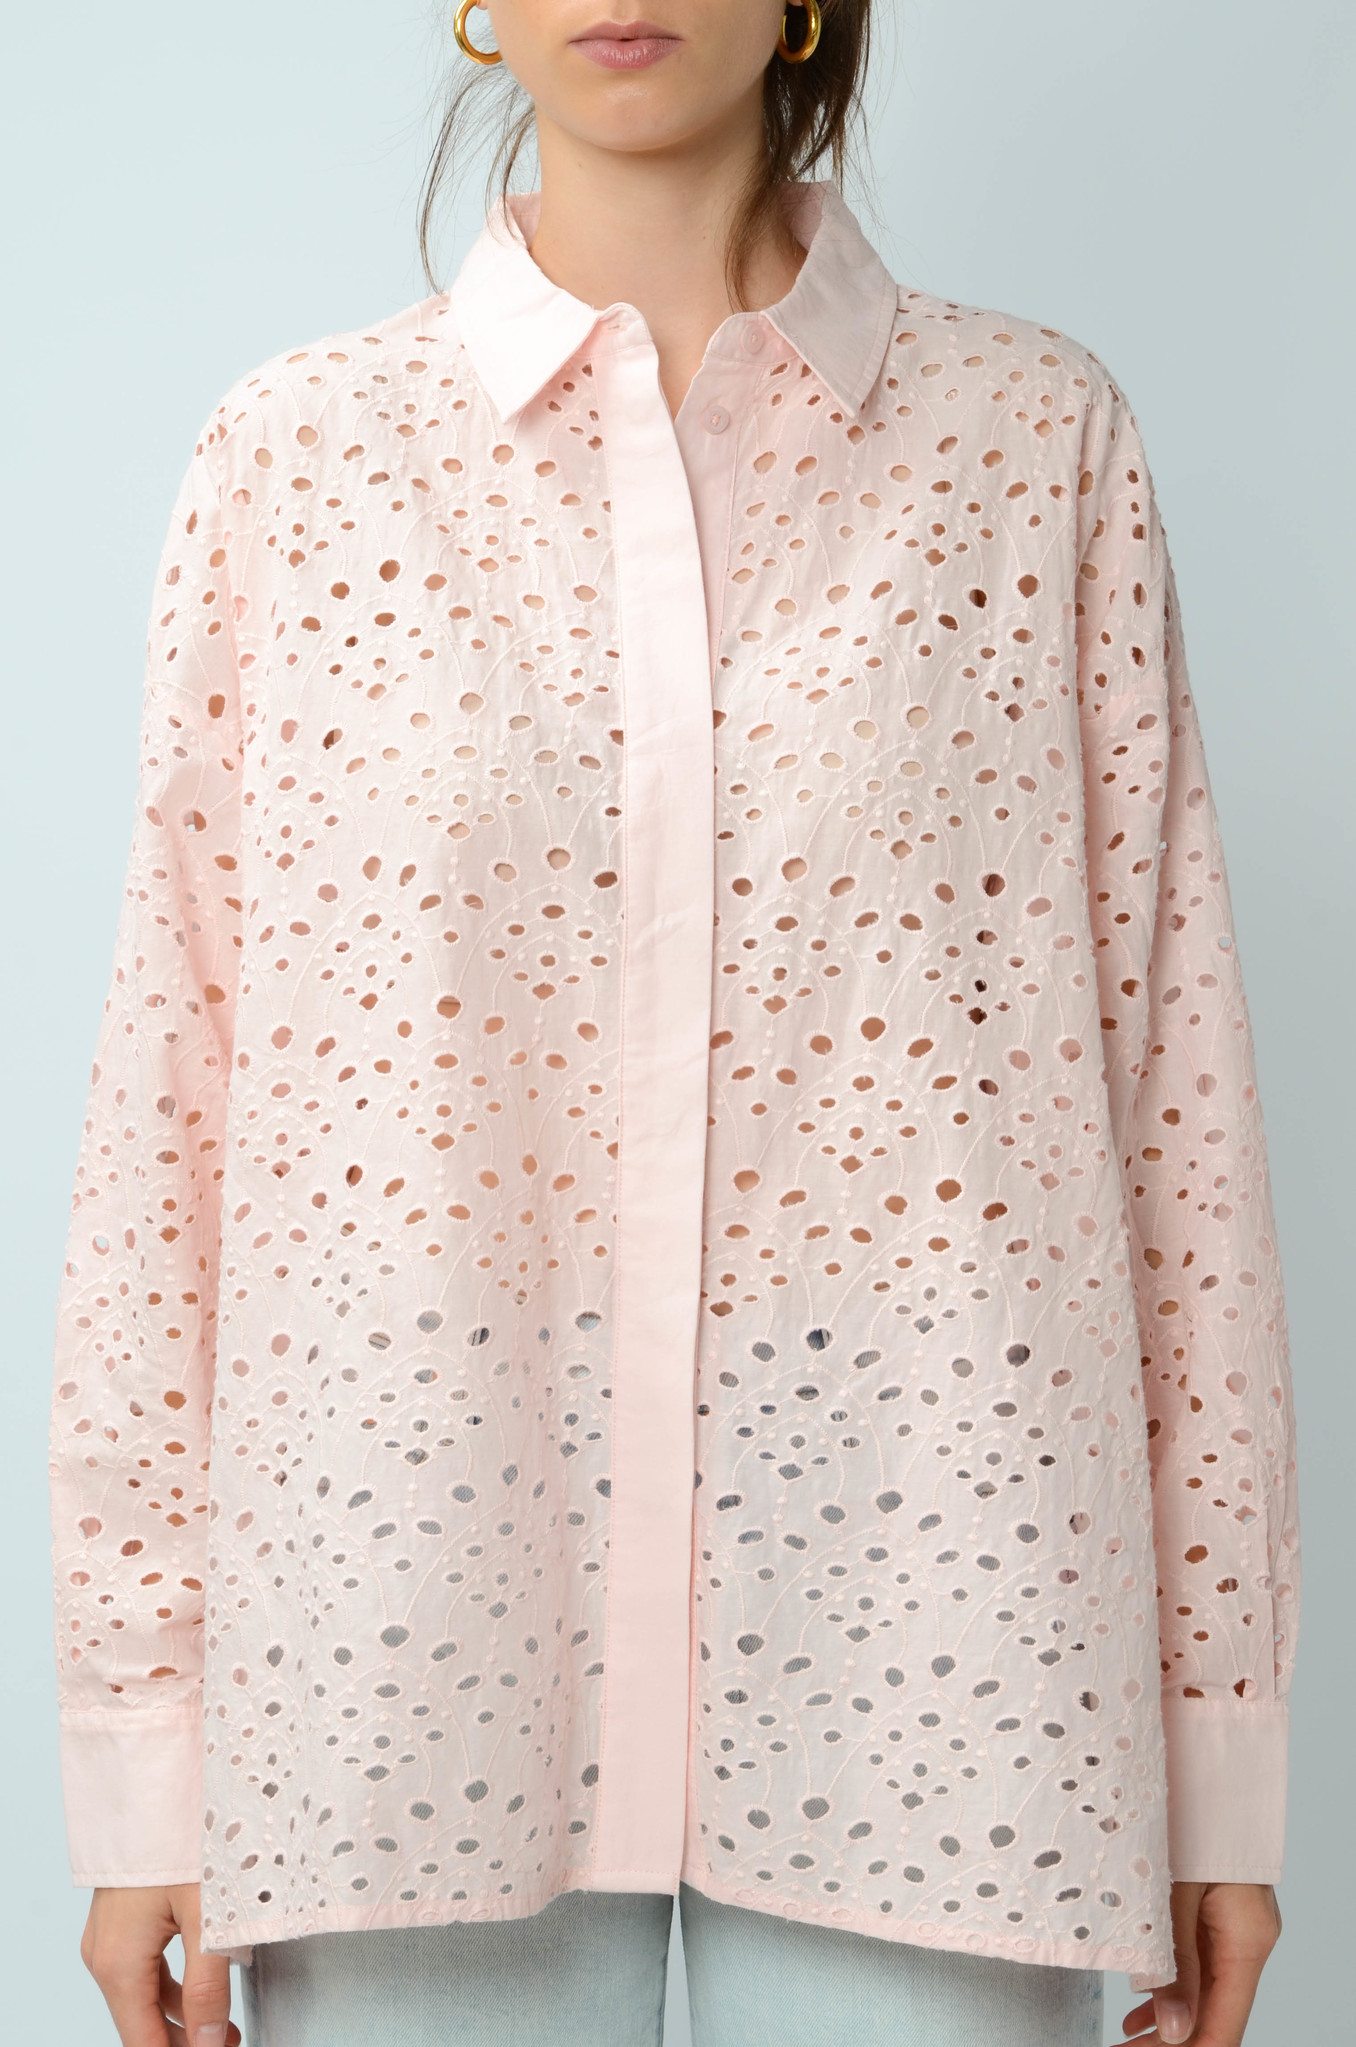 WOODY SHIRT IN PINK-1